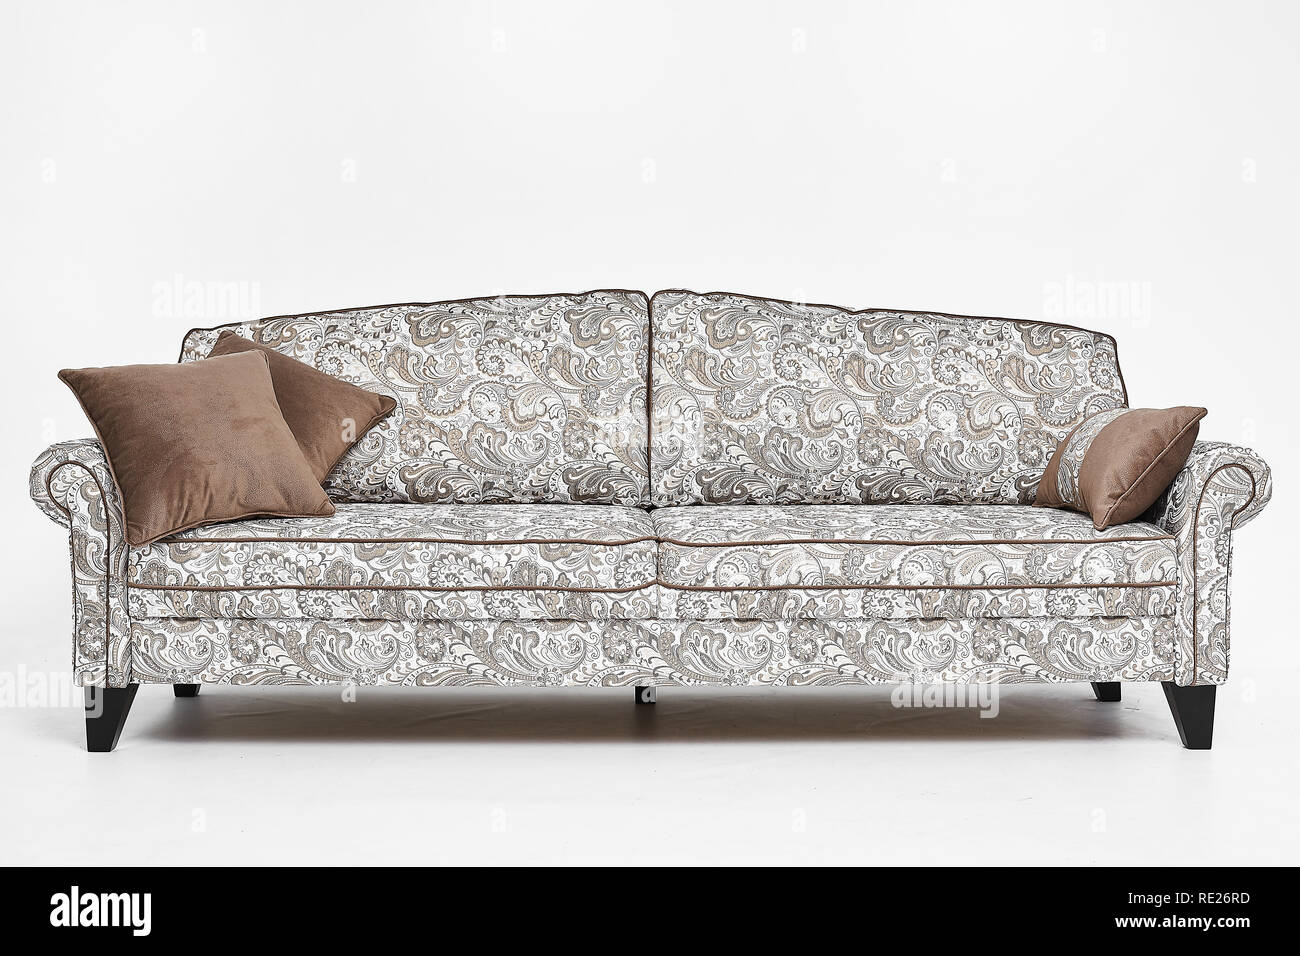 Groovy White Sofa With Vintage Style Patterns And Brown Pillows On Squirreltailoven Fun Painted Chair Ideas Images Squirreltailovenorg